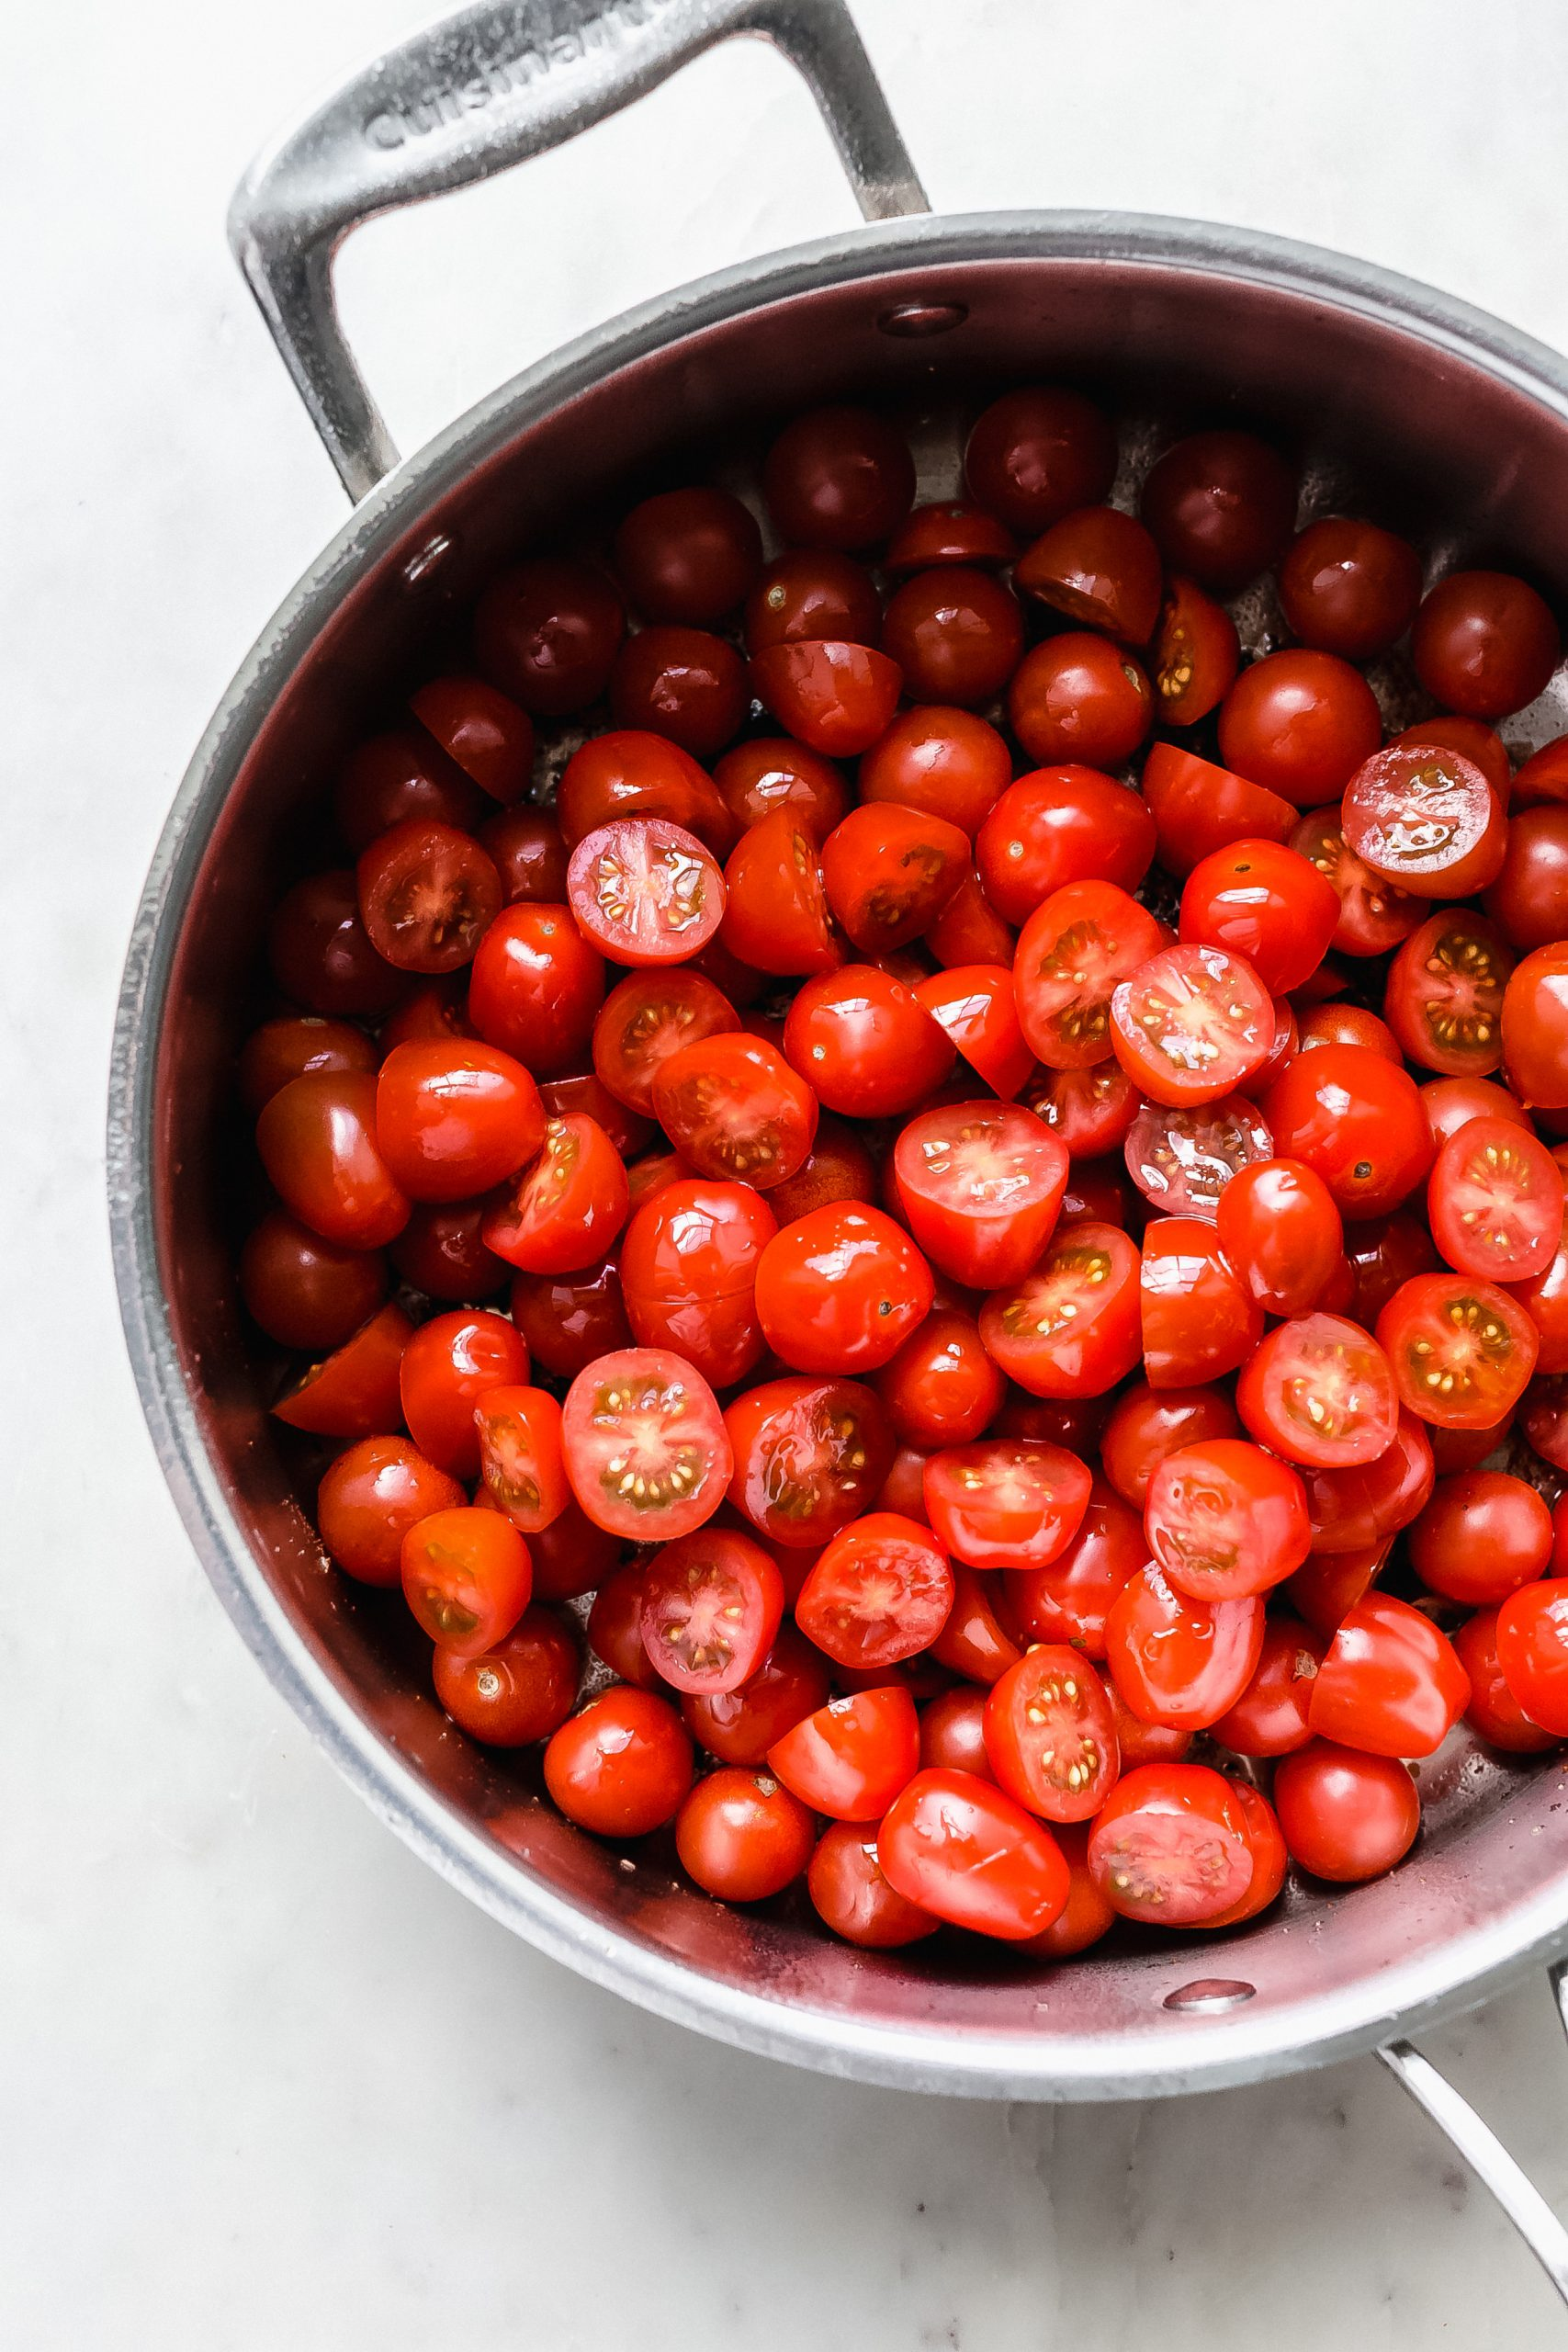 chopped tomatoes in a large saute pan